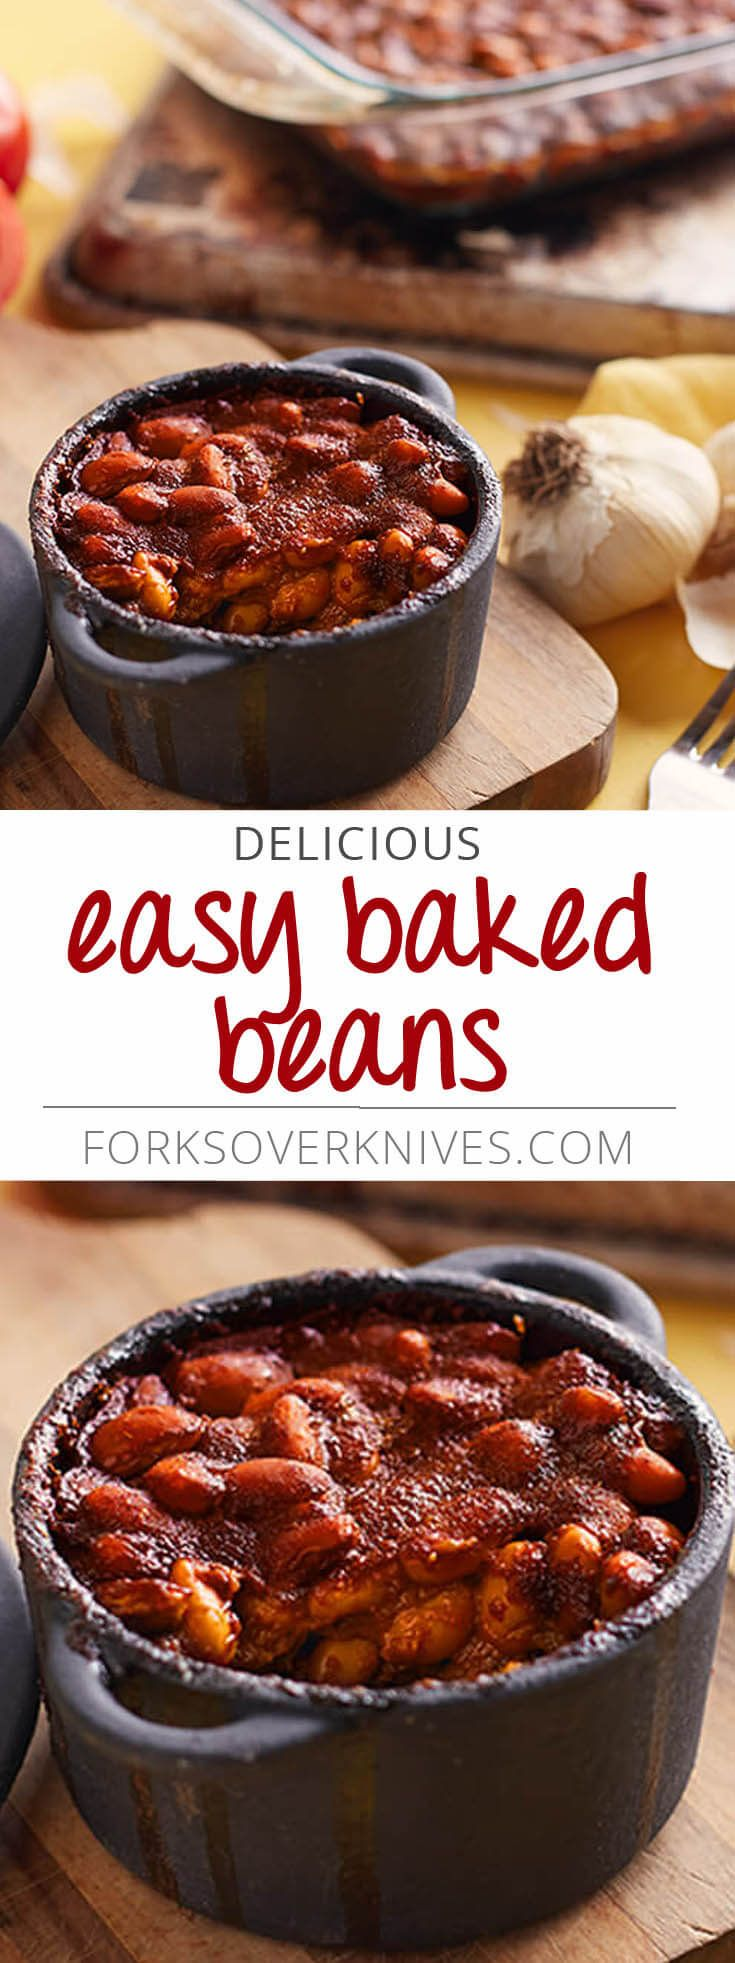 When homemade barbecue sauce is in the refrigerator, this dish can be brought together in minutes. The barbecue sauce is what makes this dish; so if you don't have time to make it at home, make sure to use a...  Read more